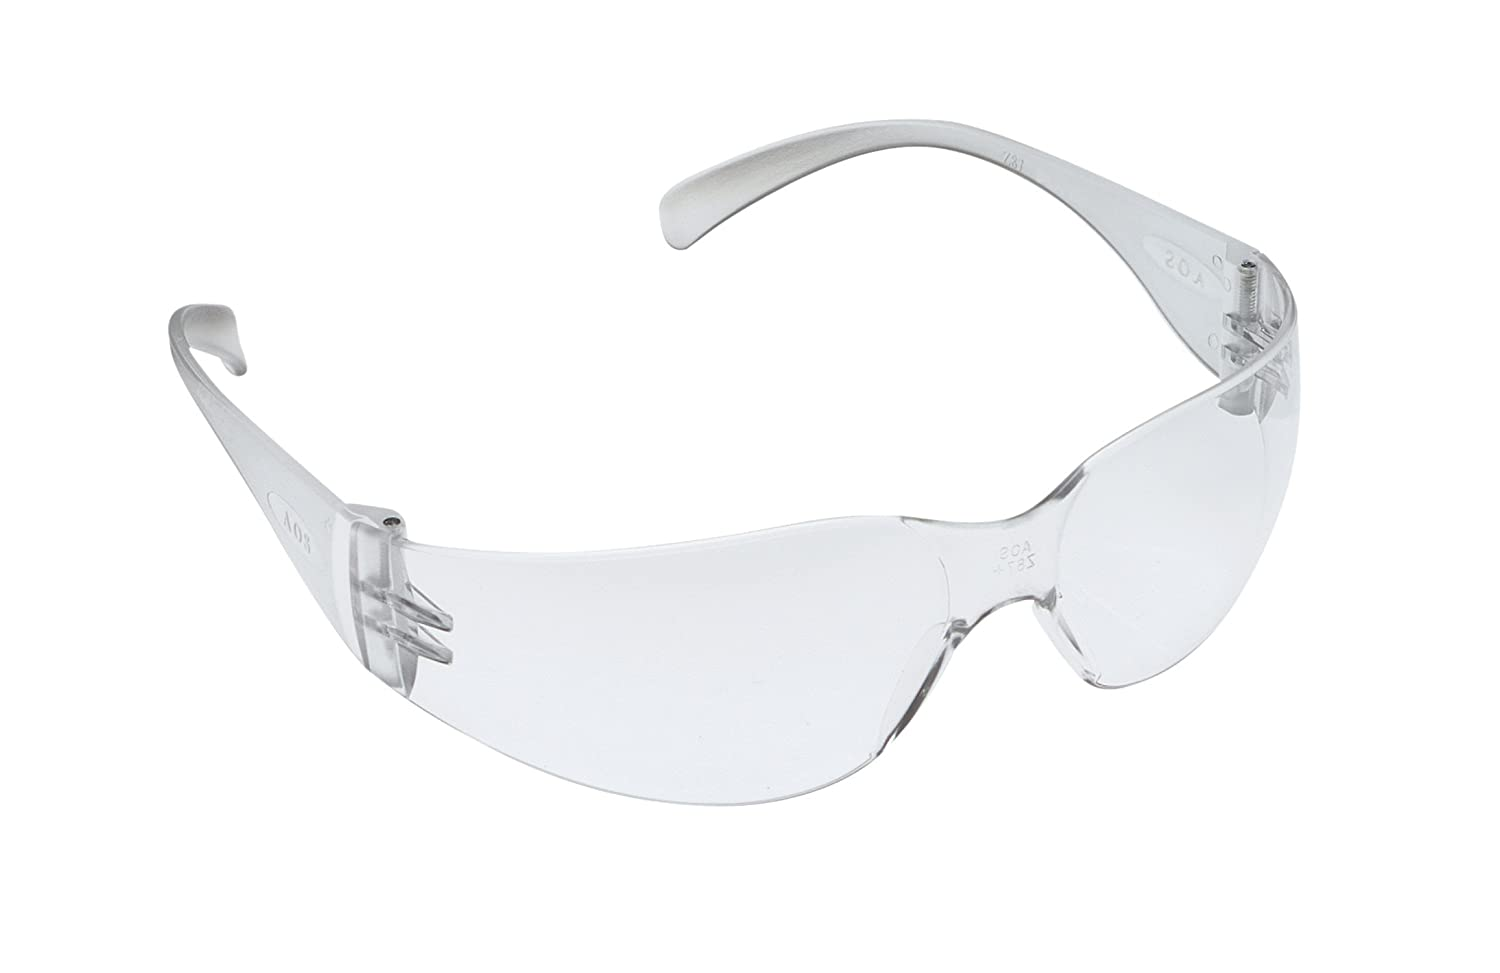 3M Tekk 11329 Virtua Anti-Fog Safety Glasses, Clear Frame, Clear Lens, 3-PACK